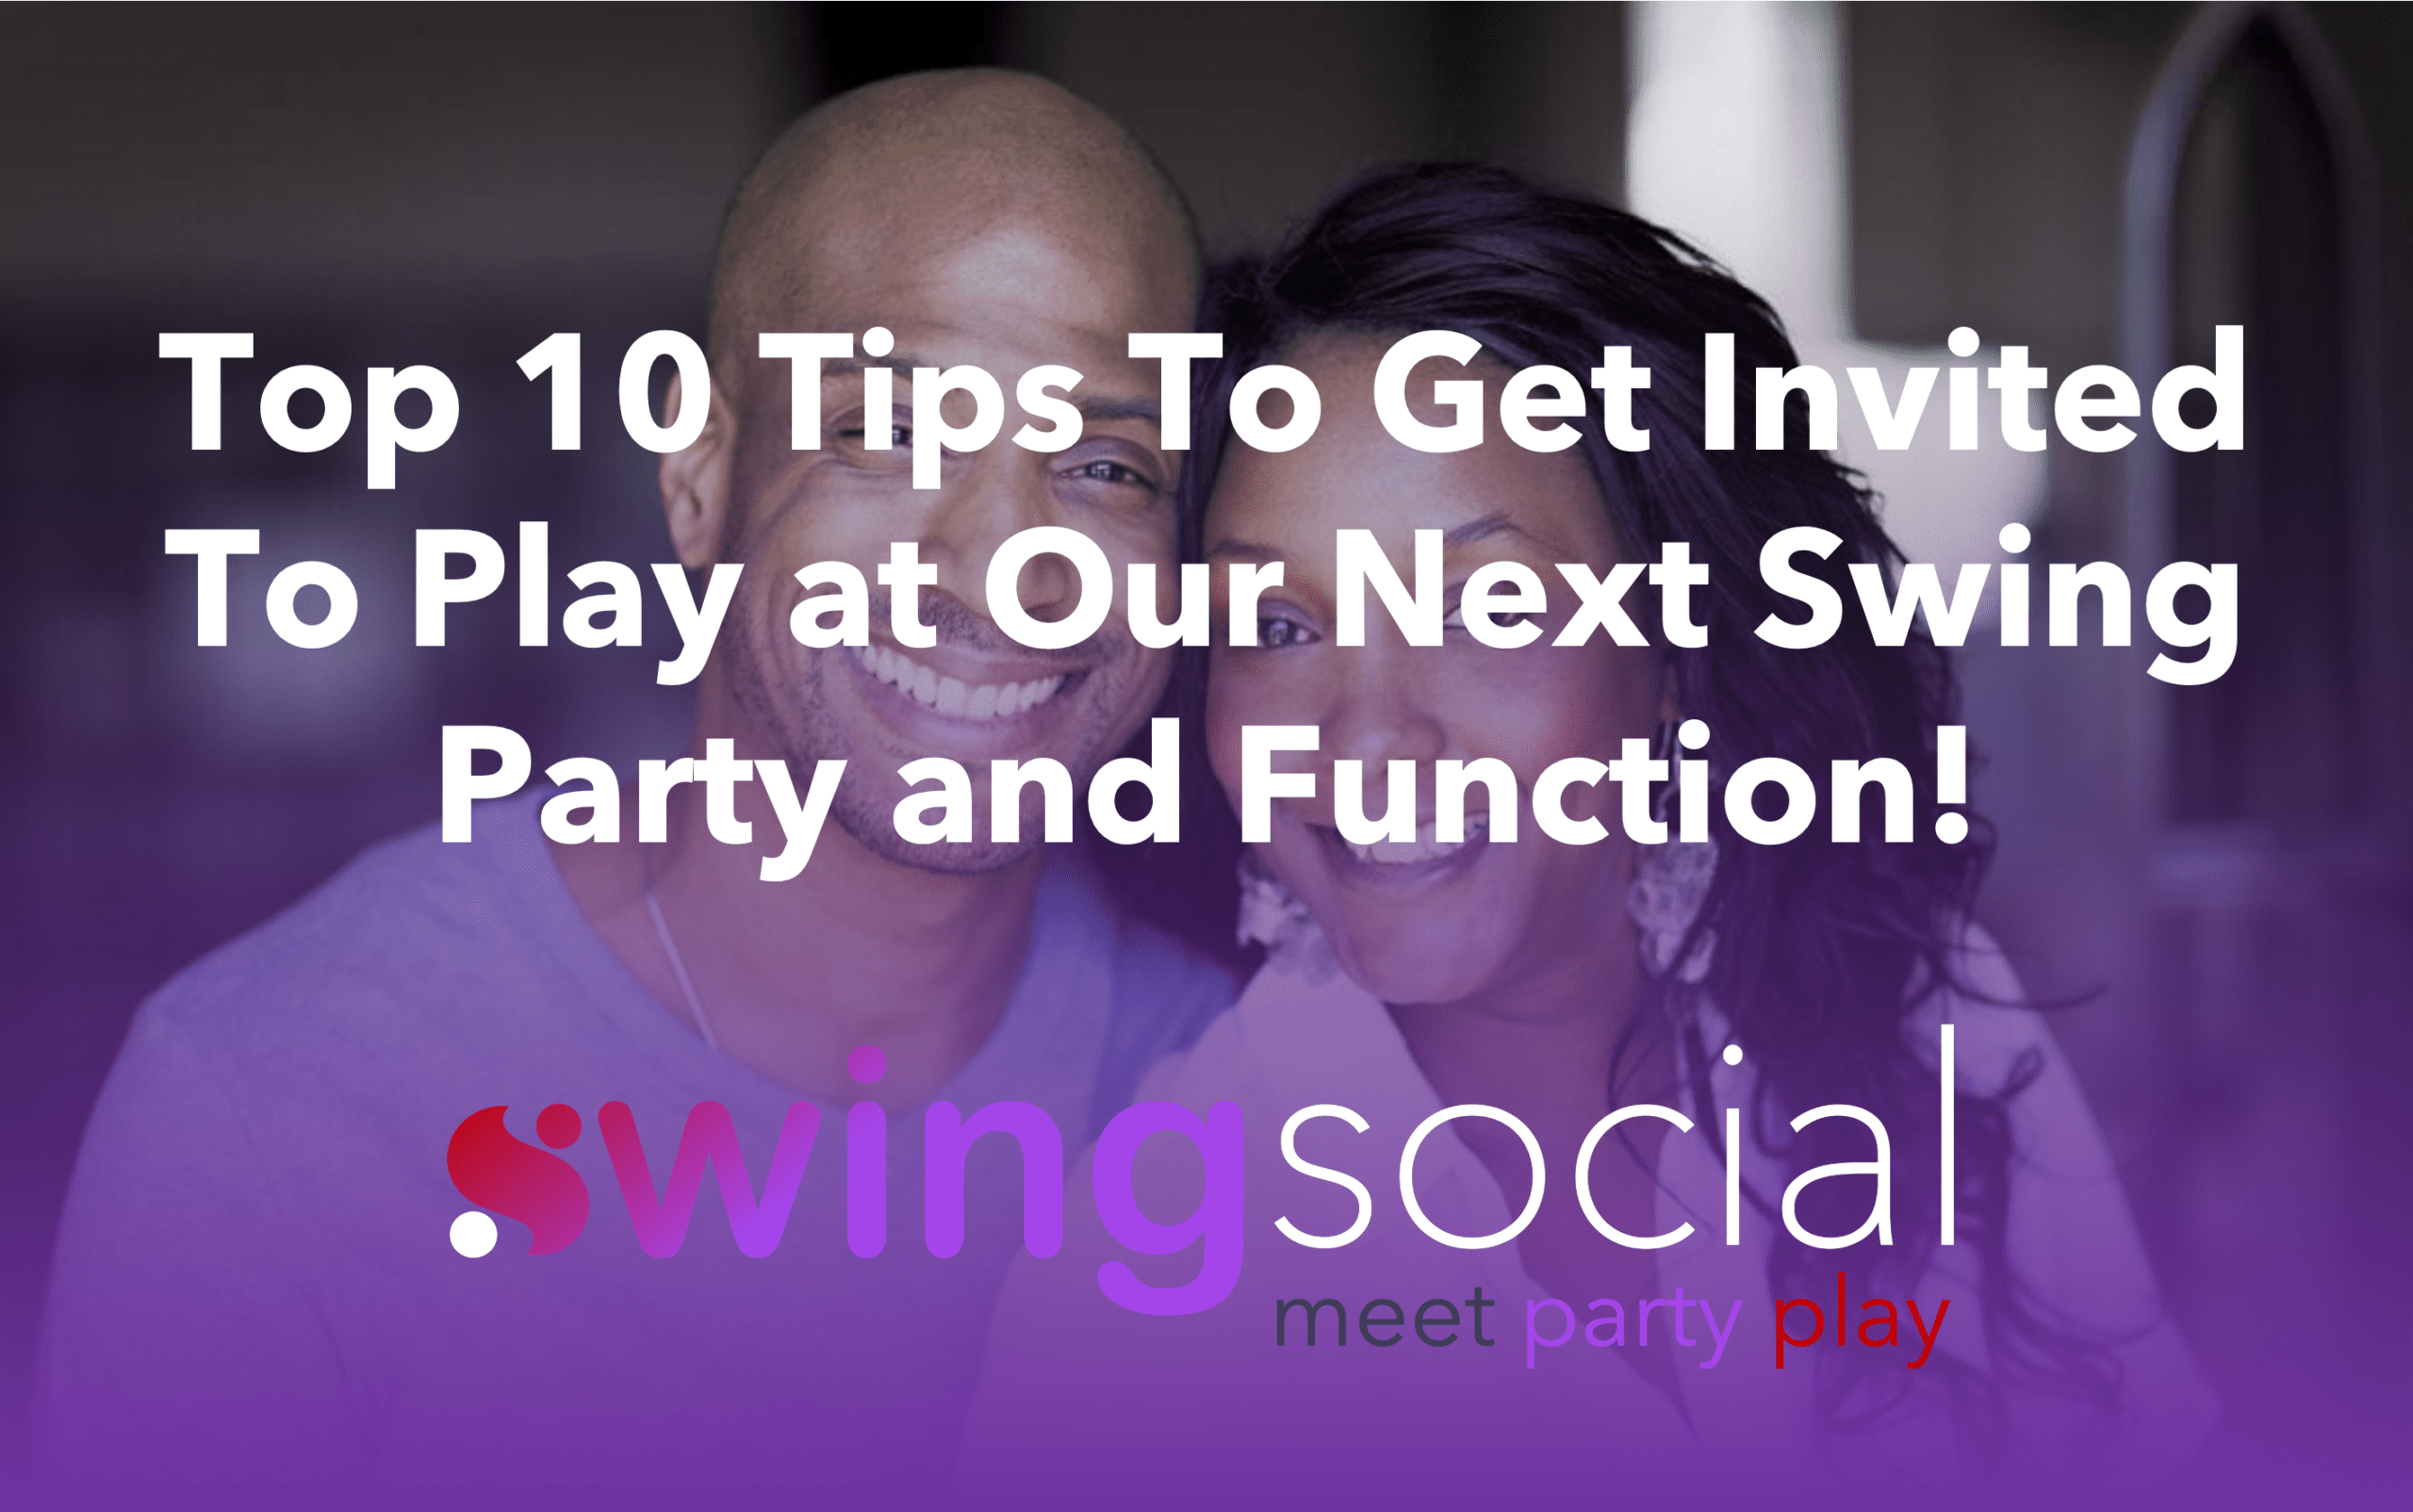 Top 10 Tips To Get Invited To Play!